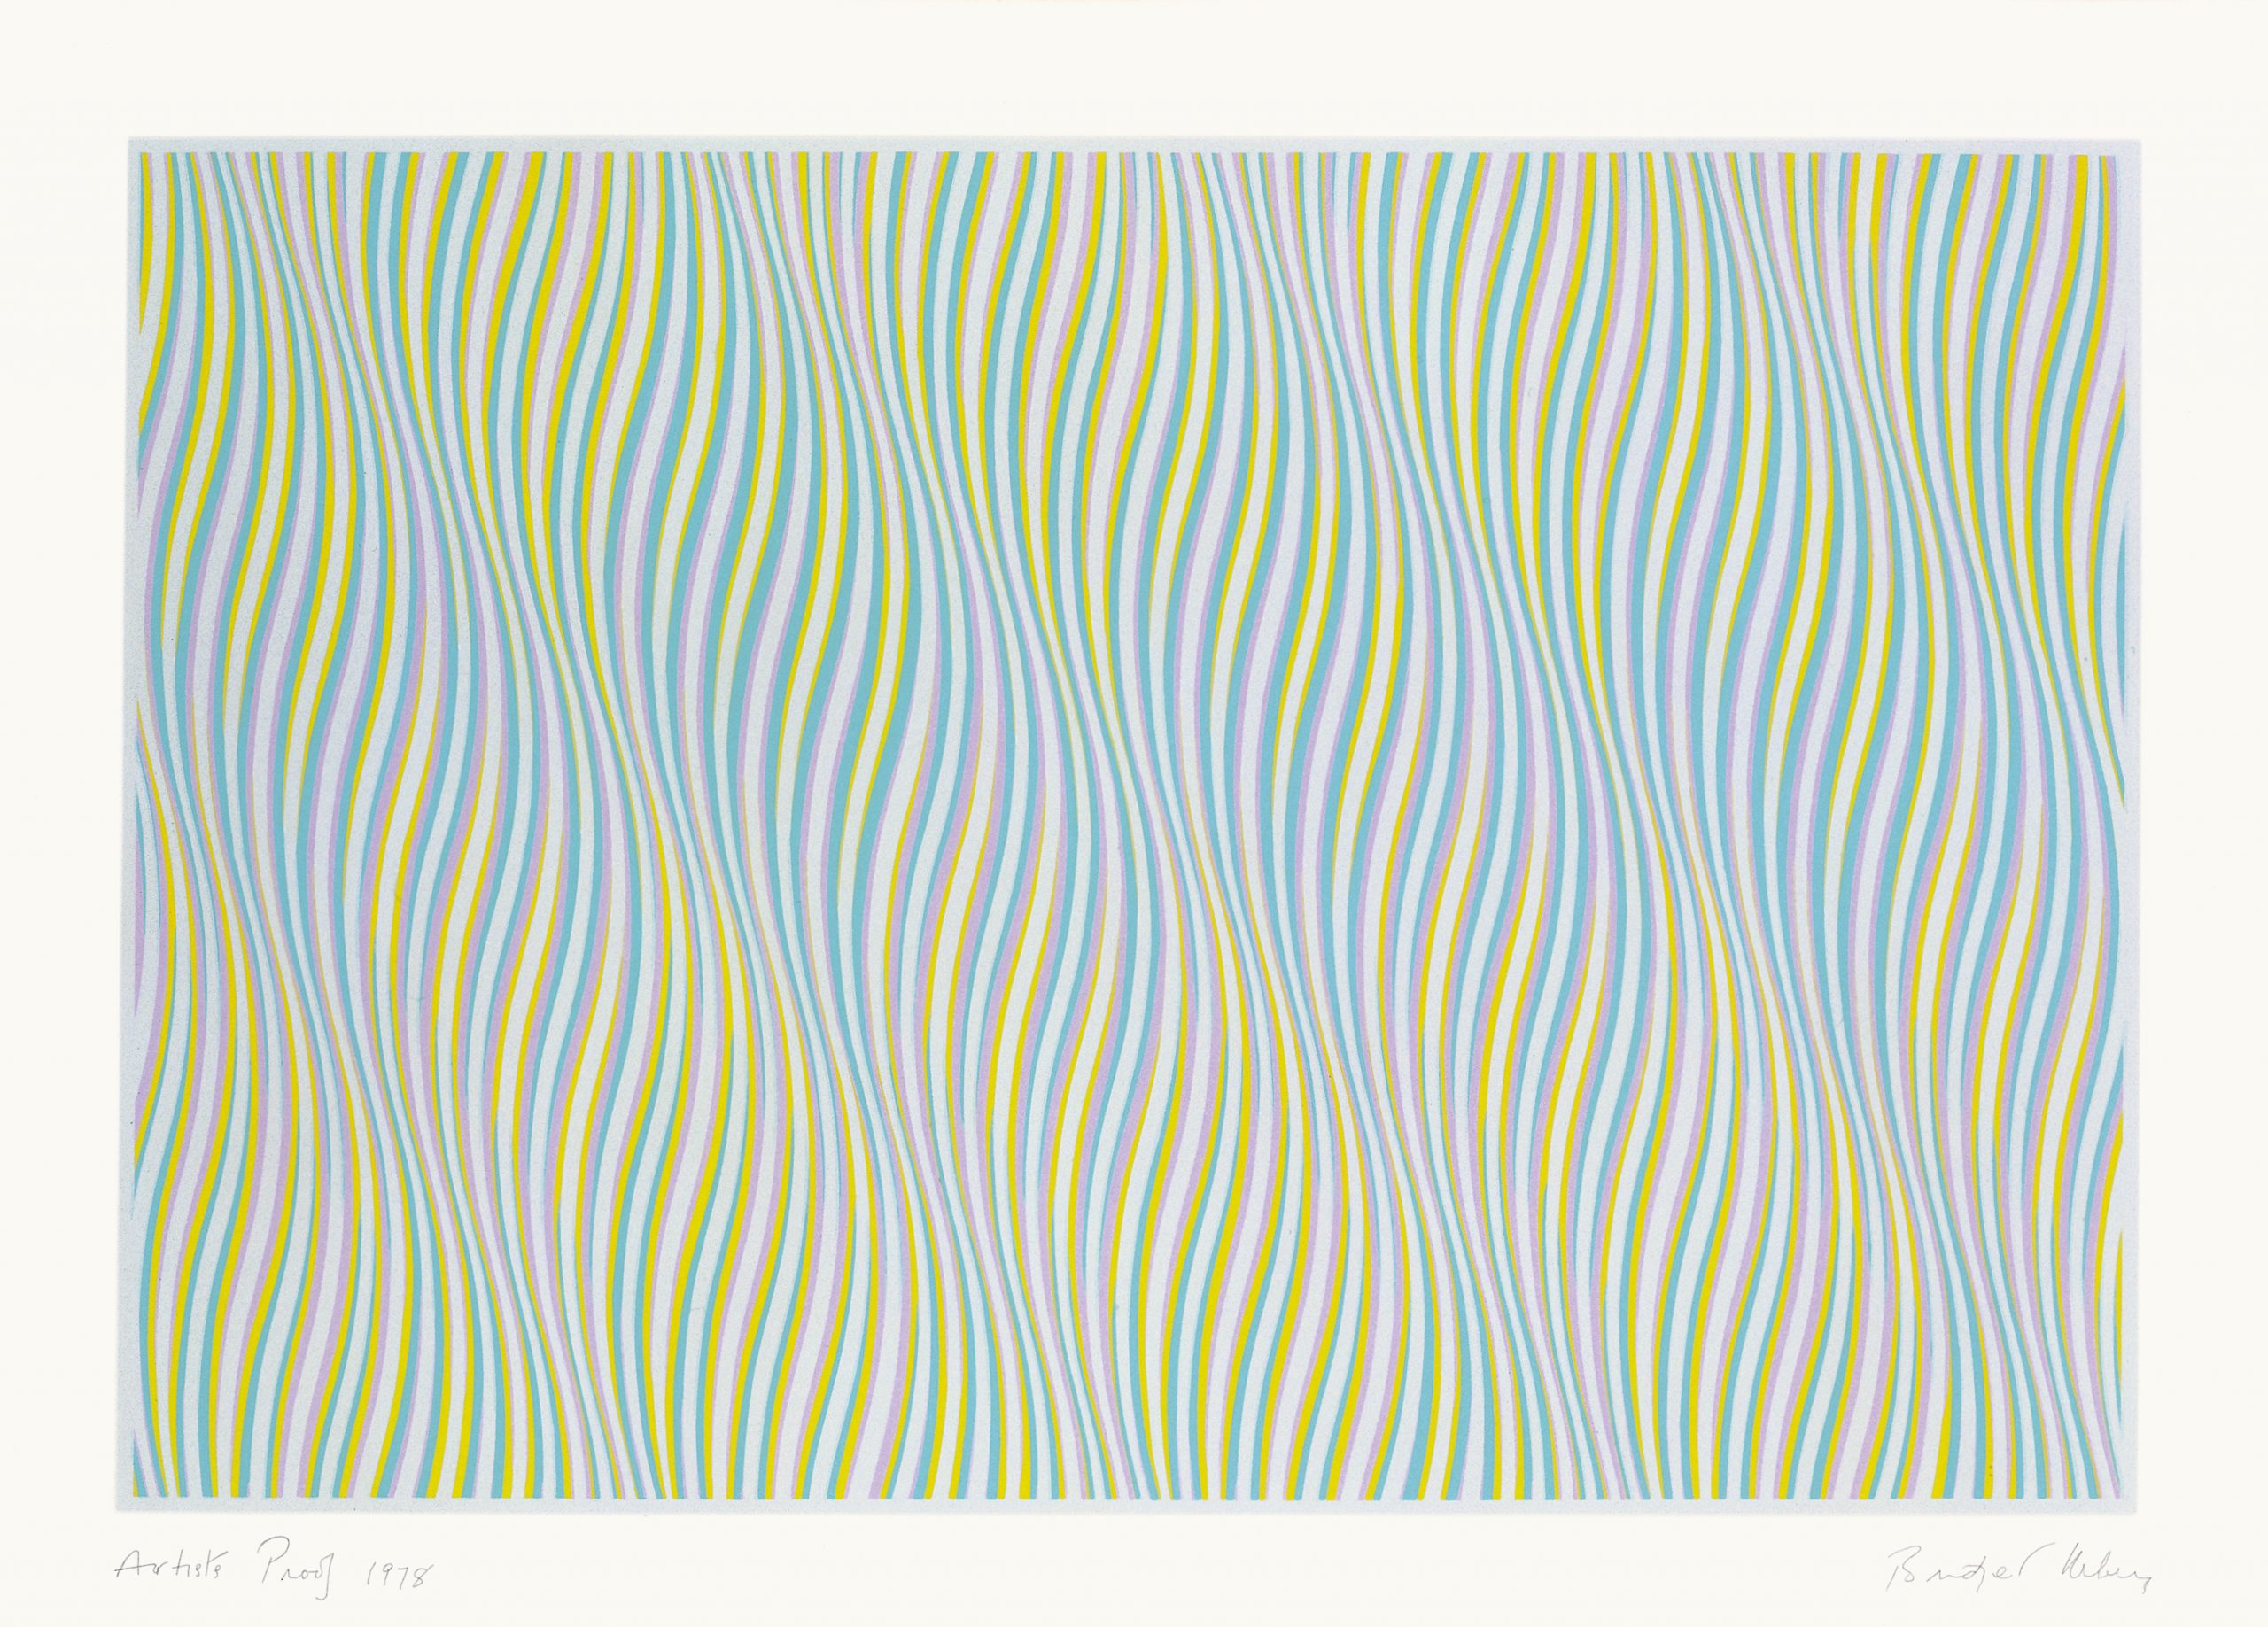 Untitled (Blue) by Bridget Riley